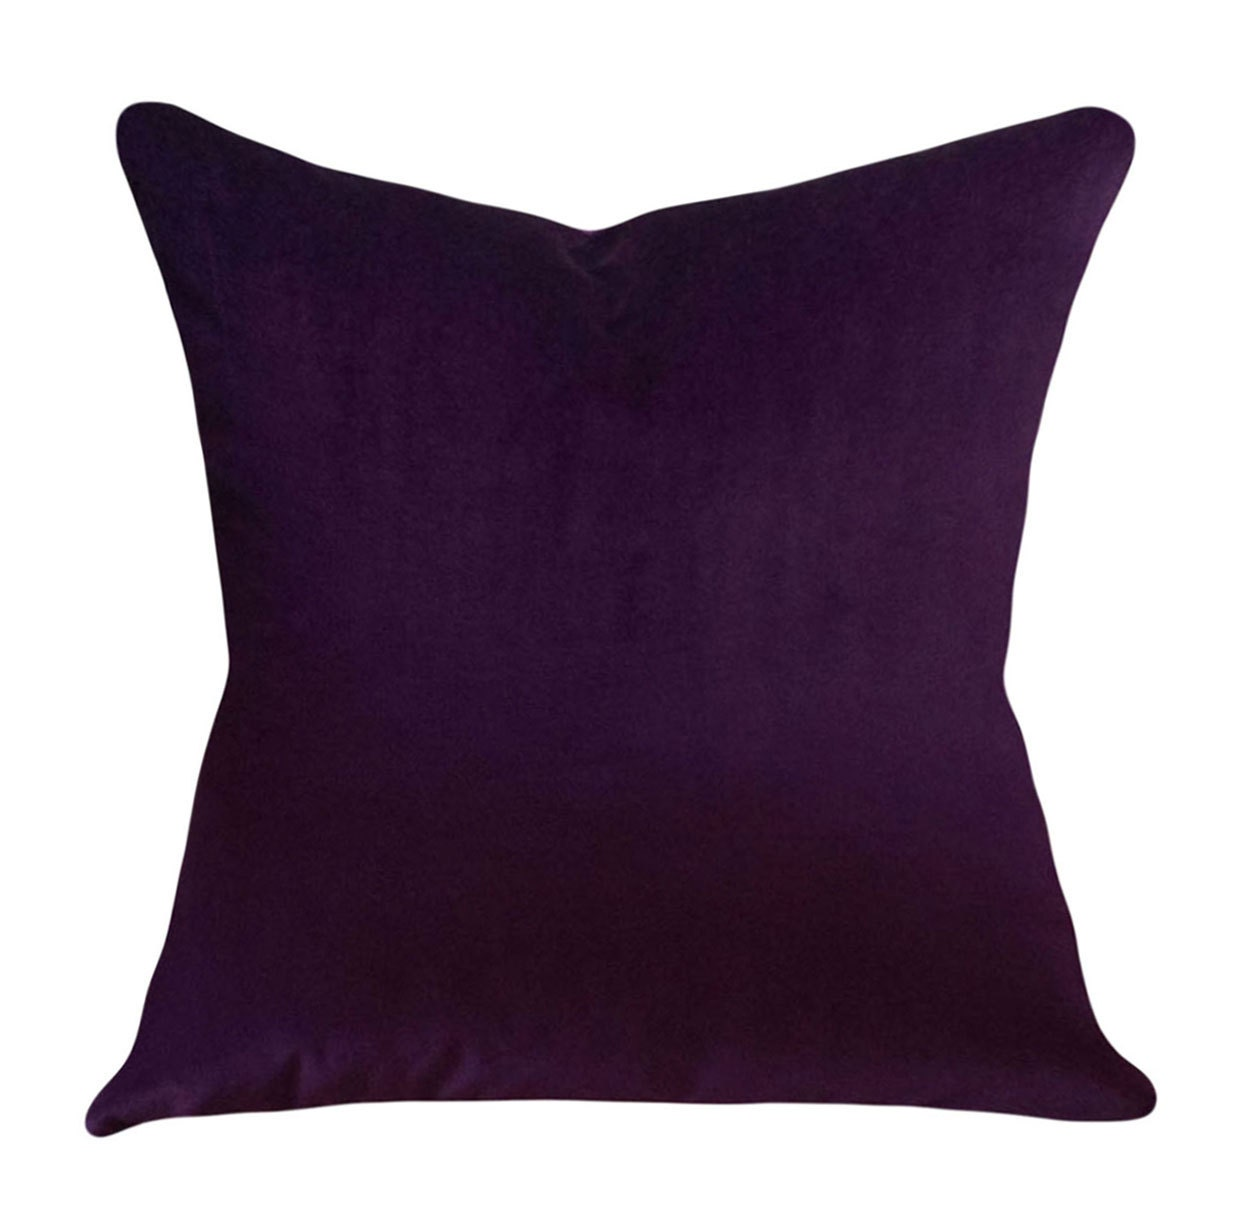 Purple Velvet Decorative Pillow Cover Throw by PillowTimeGirls